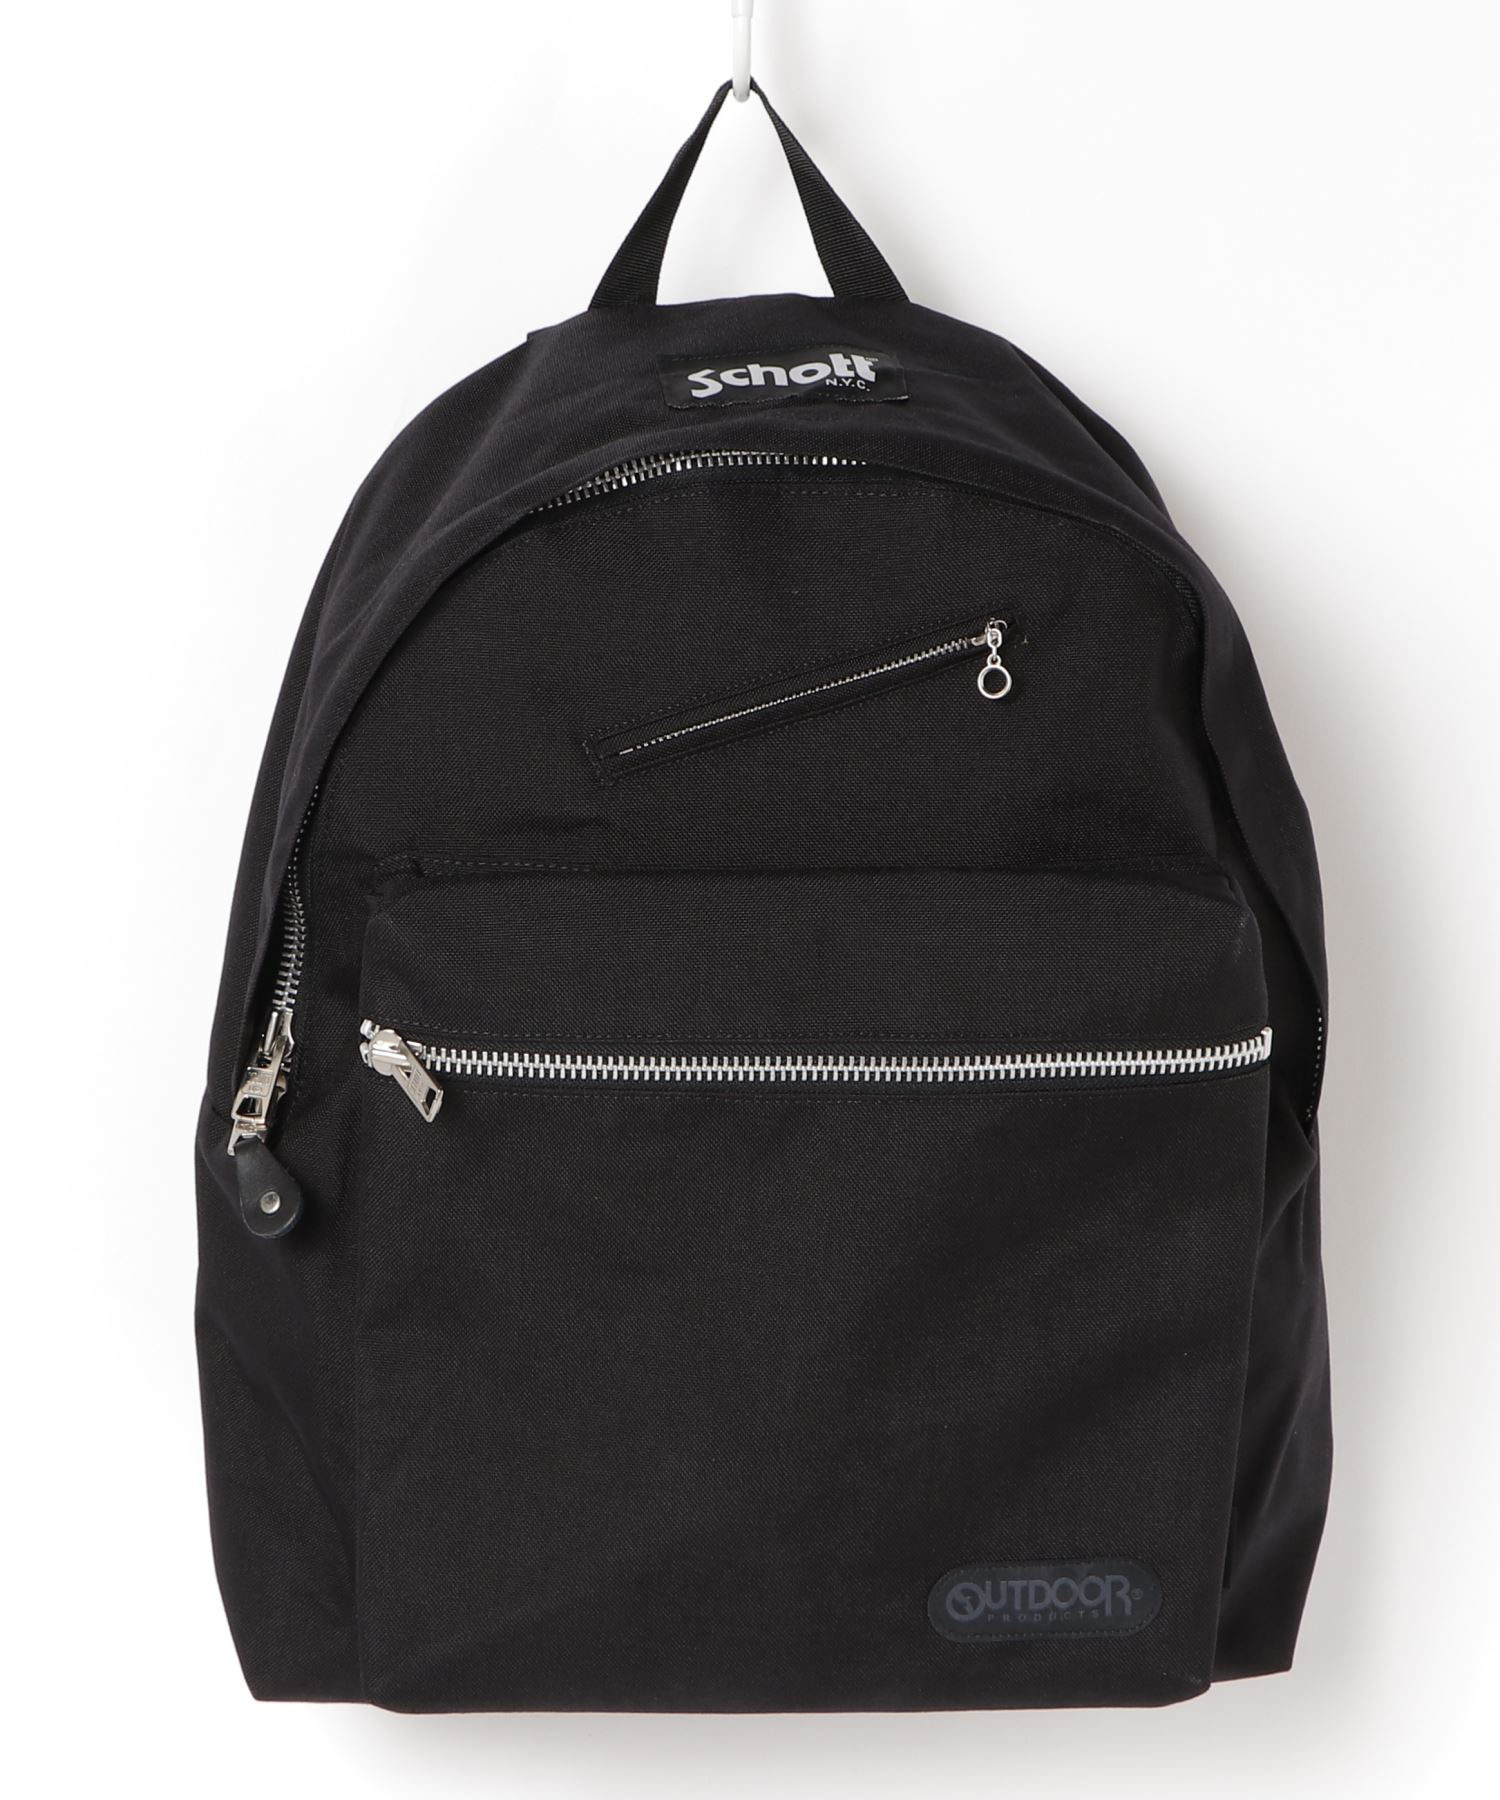 【Schott×OUTDOOR PRODUCTS】コラボレーションデイパック バックパック